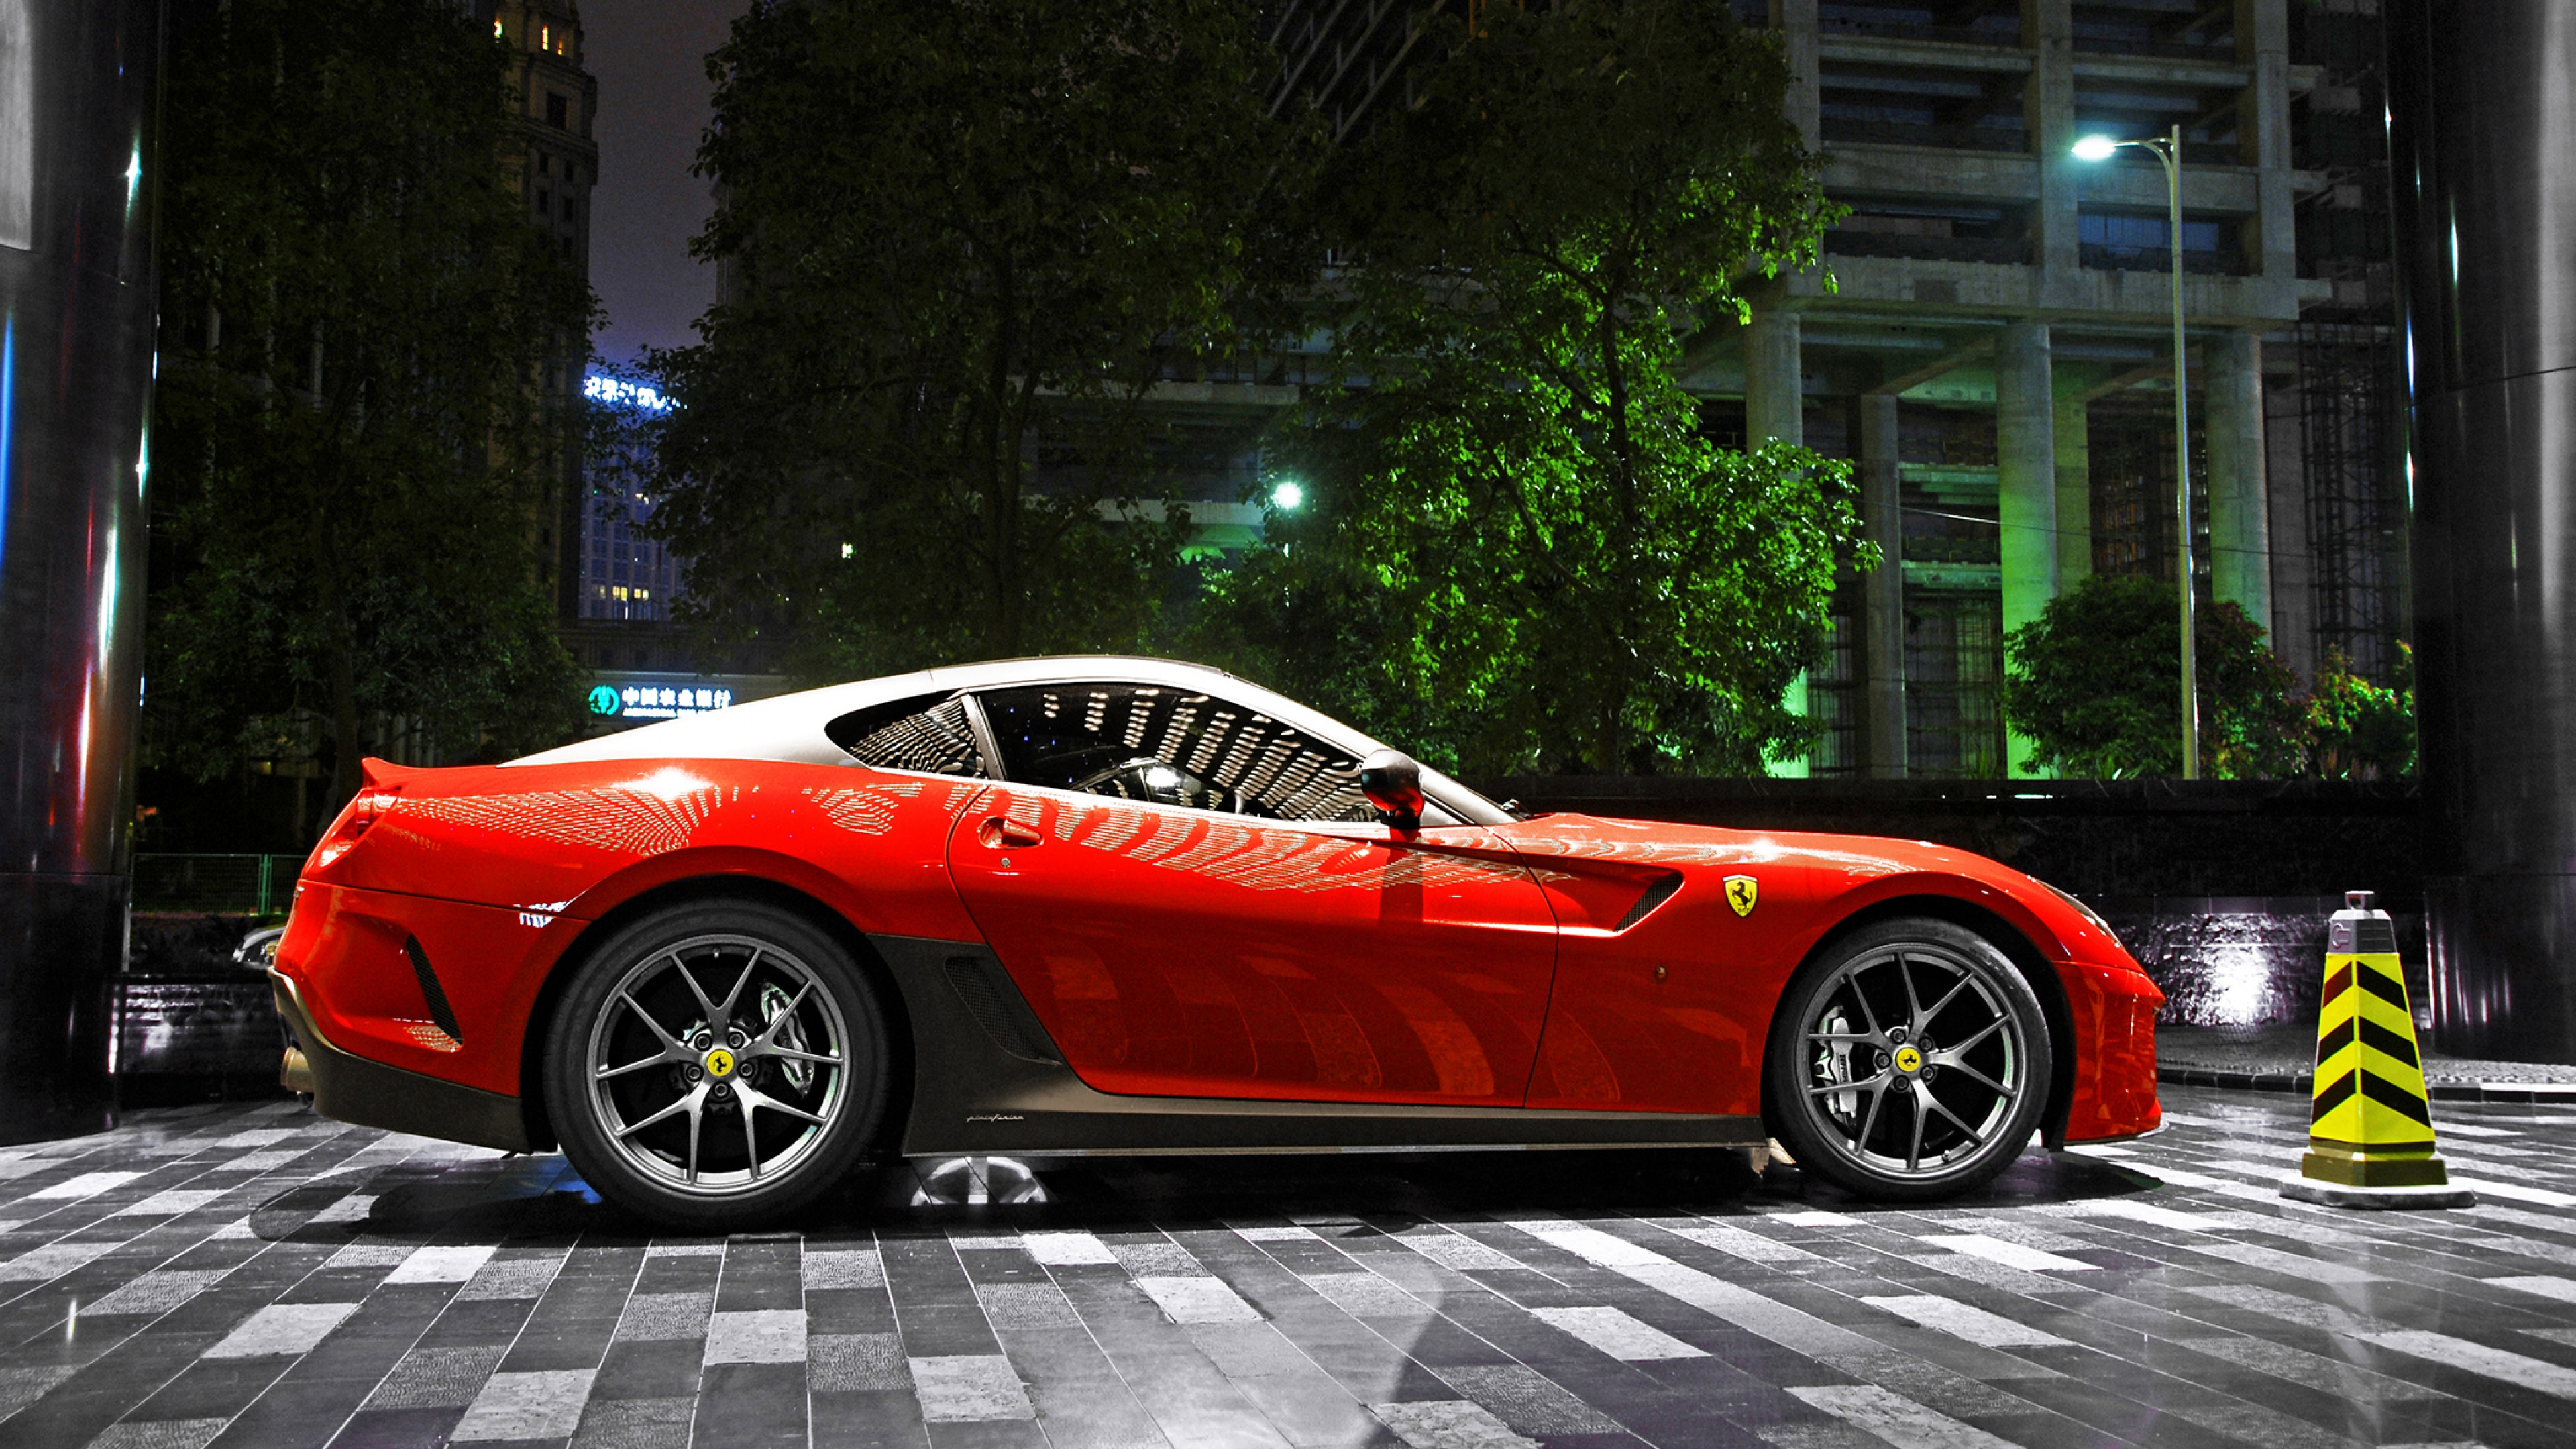 Wonderful Wallpaper Night Ferrari - ferrari-599  Collection-765182.jpg